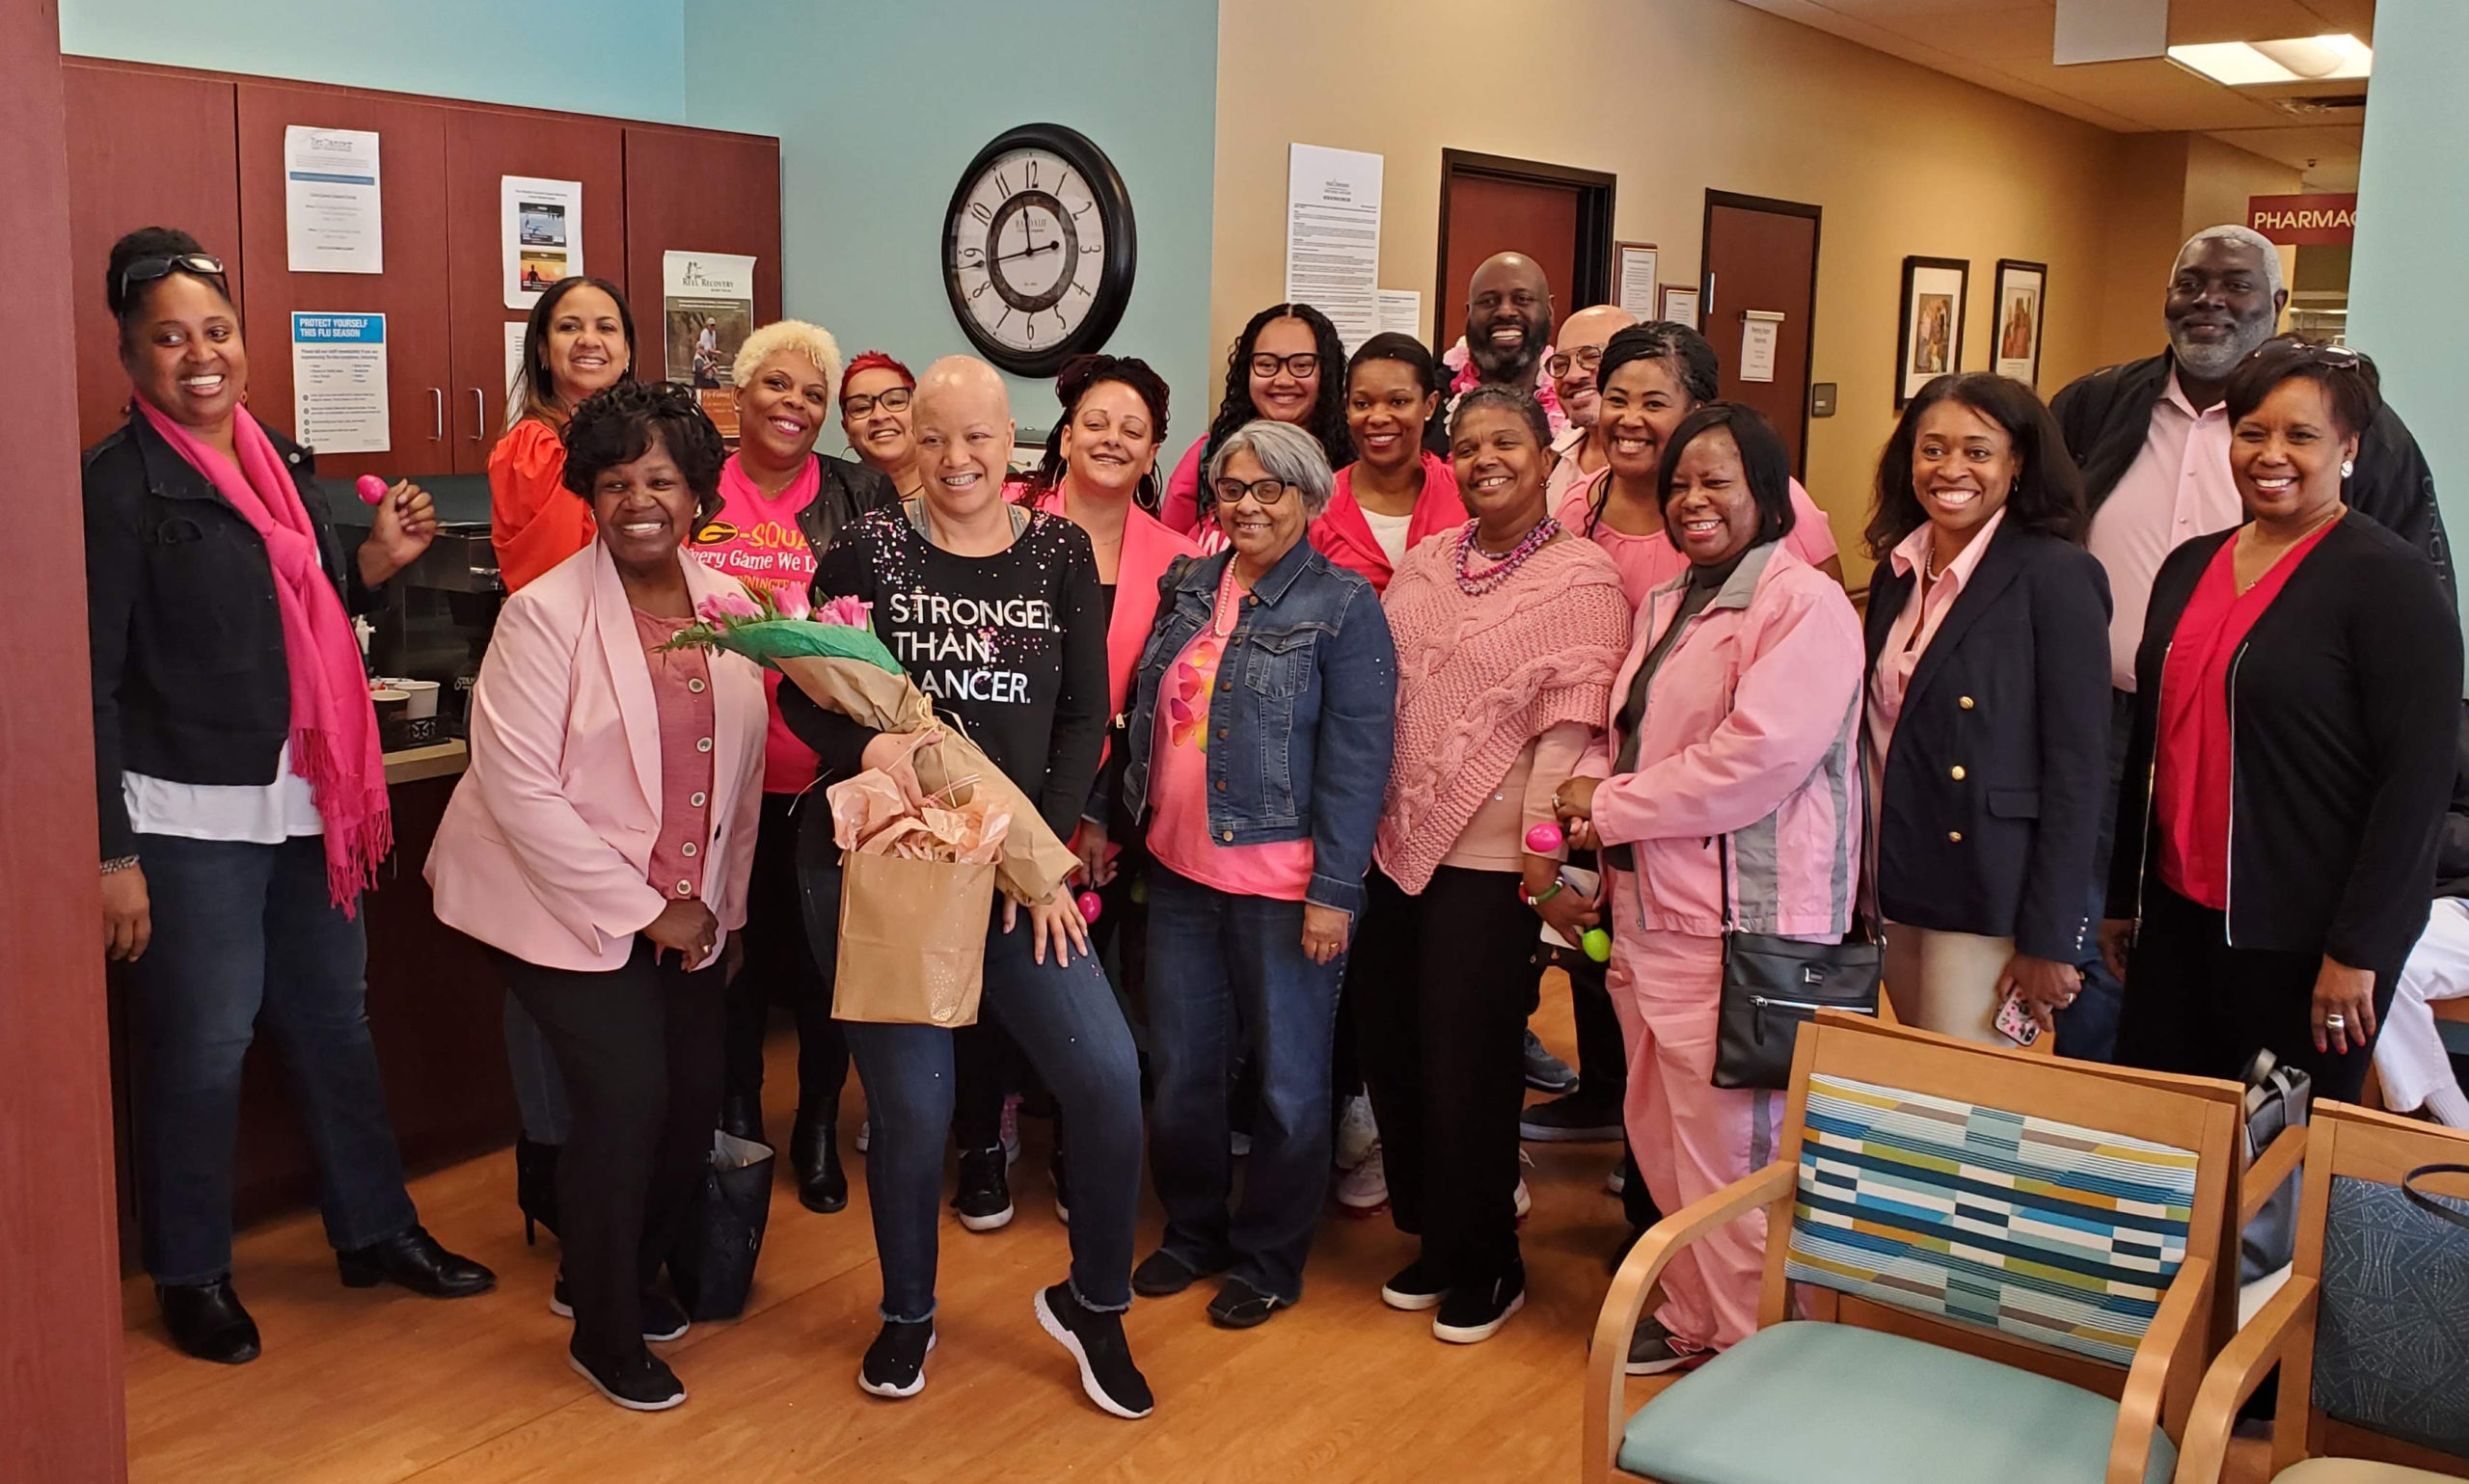 Kenya Johnson with friends and family on her last day of chemo at Texas Oncology